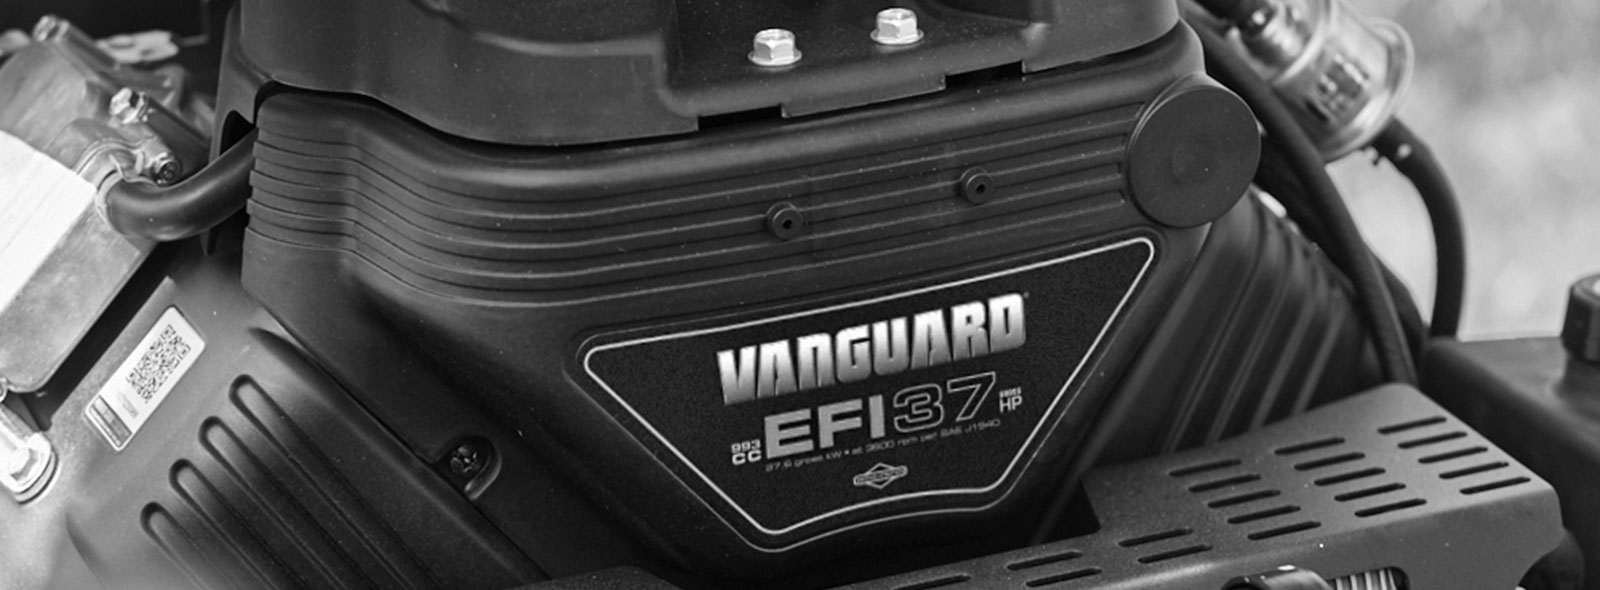 Vanguard Commercial Power Product Catalog